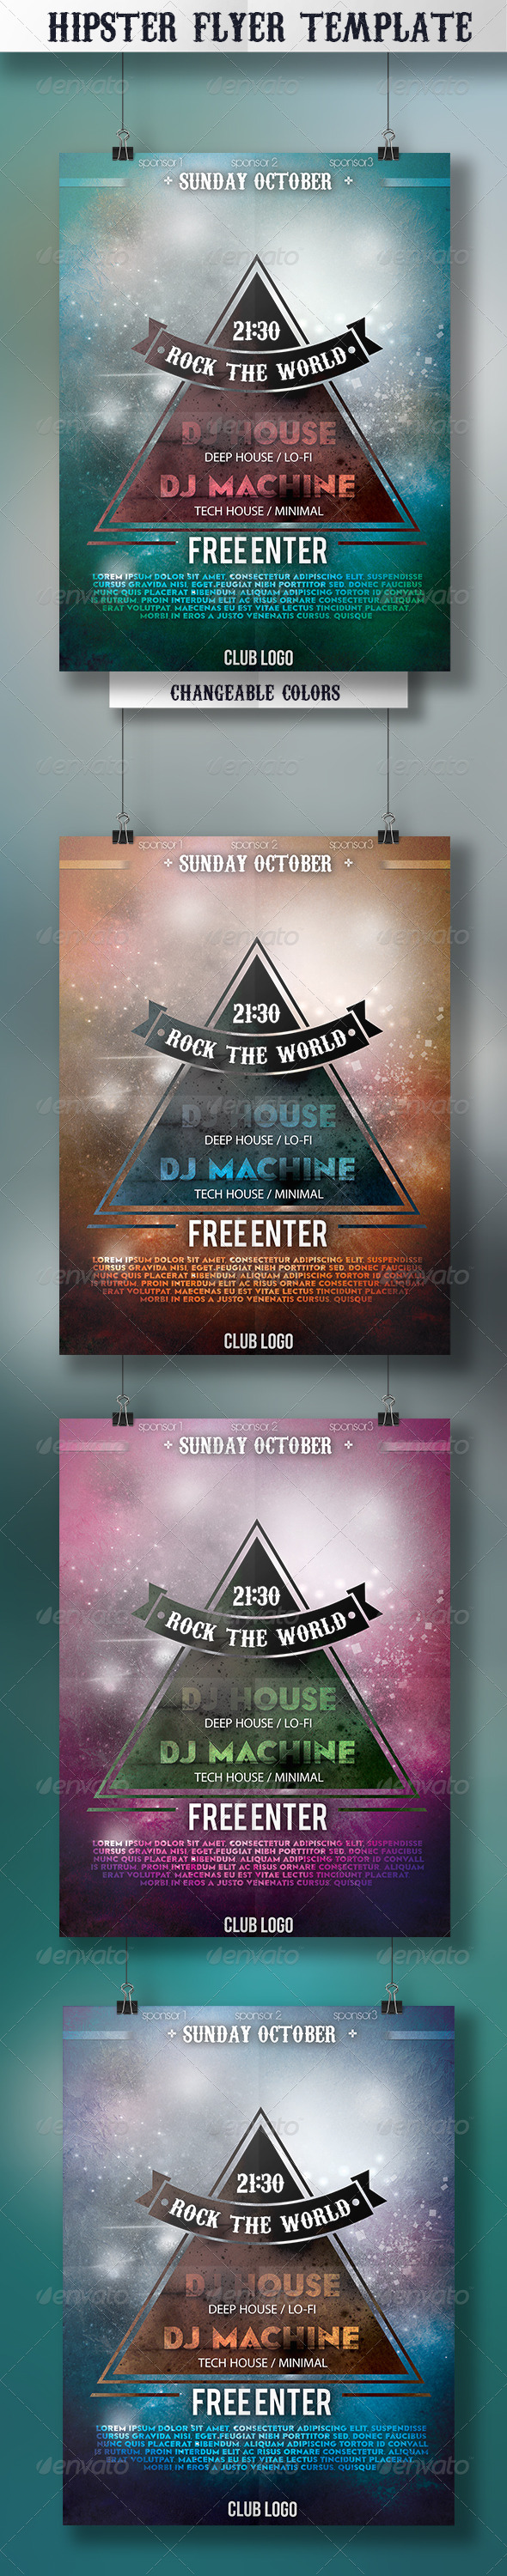 GraphicRiver Hipster Flyer Template 5072267